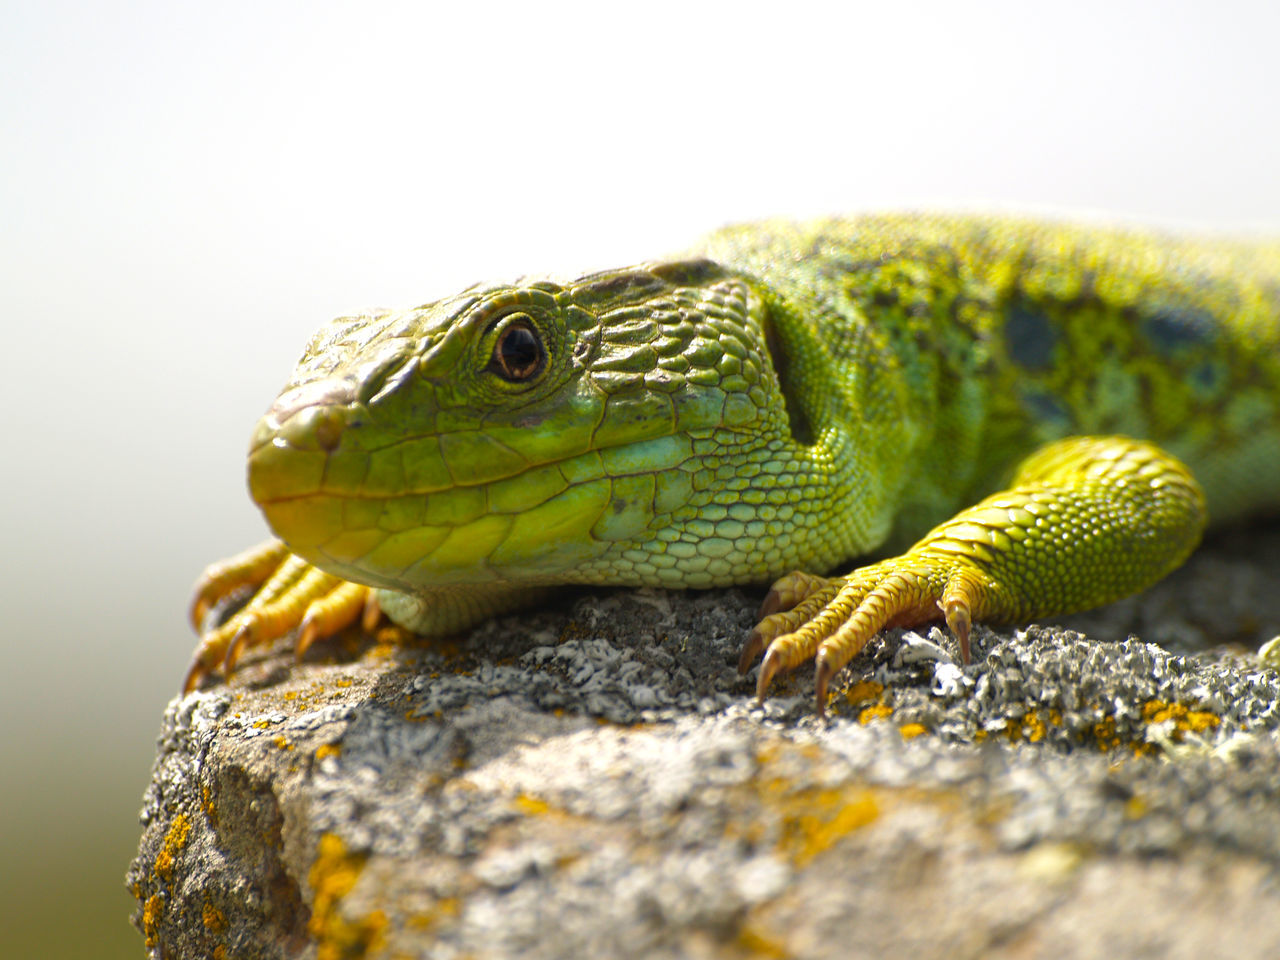 Animal Animal Themes Animal Wildlife Animals Animals In The Wild Animals In The Wild Day Eyed Lizard Green Jeweled Lacerta Lacerta Lacerta Lepida Lizard Male Nature No People Ocellated Lizard One Animal Outdoors Reptile Reptile Sunbath Sunbathing Timon Lepidus Wildlife